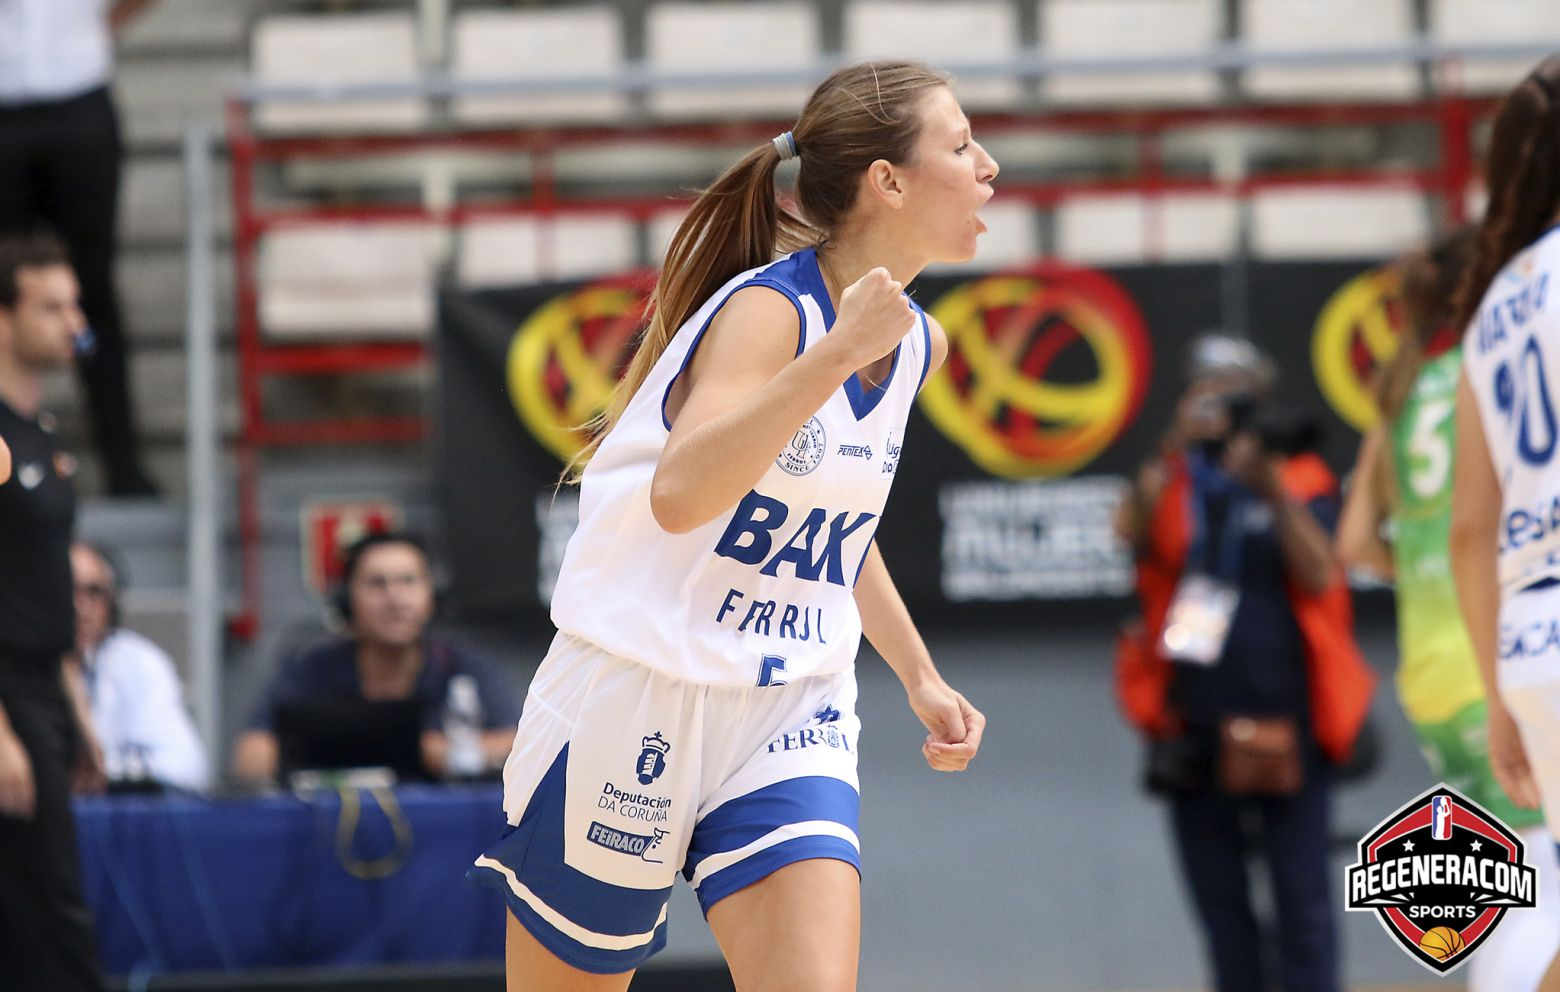 ANI CALVO has signed in Spain with Campus Promete